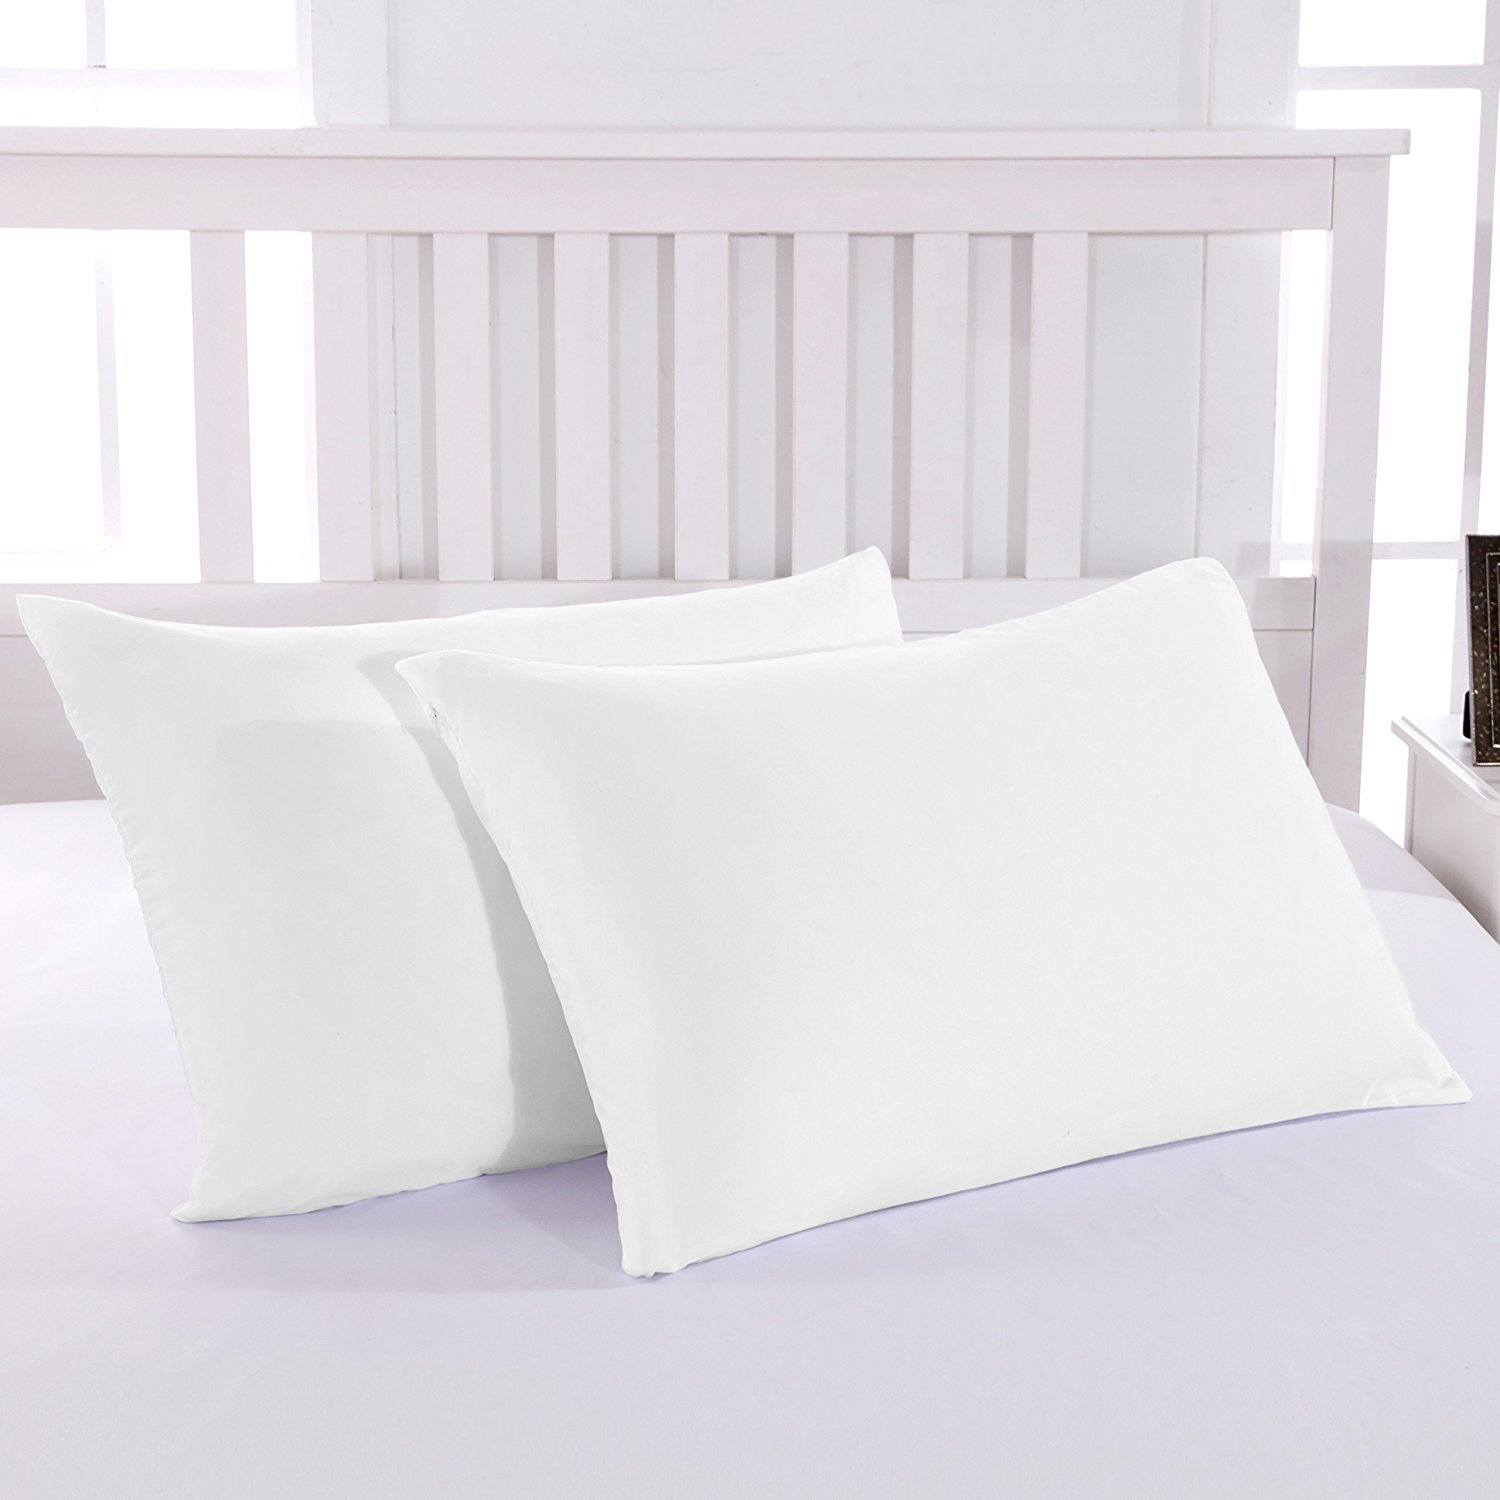 TheVelvetCompany Premium 1800 Ultra-Soft Microfiber Pillowcase Set - Double Brushed - Hypoallergenic - Wrinkle Resistant (King Pillowcase Set of 2, White)